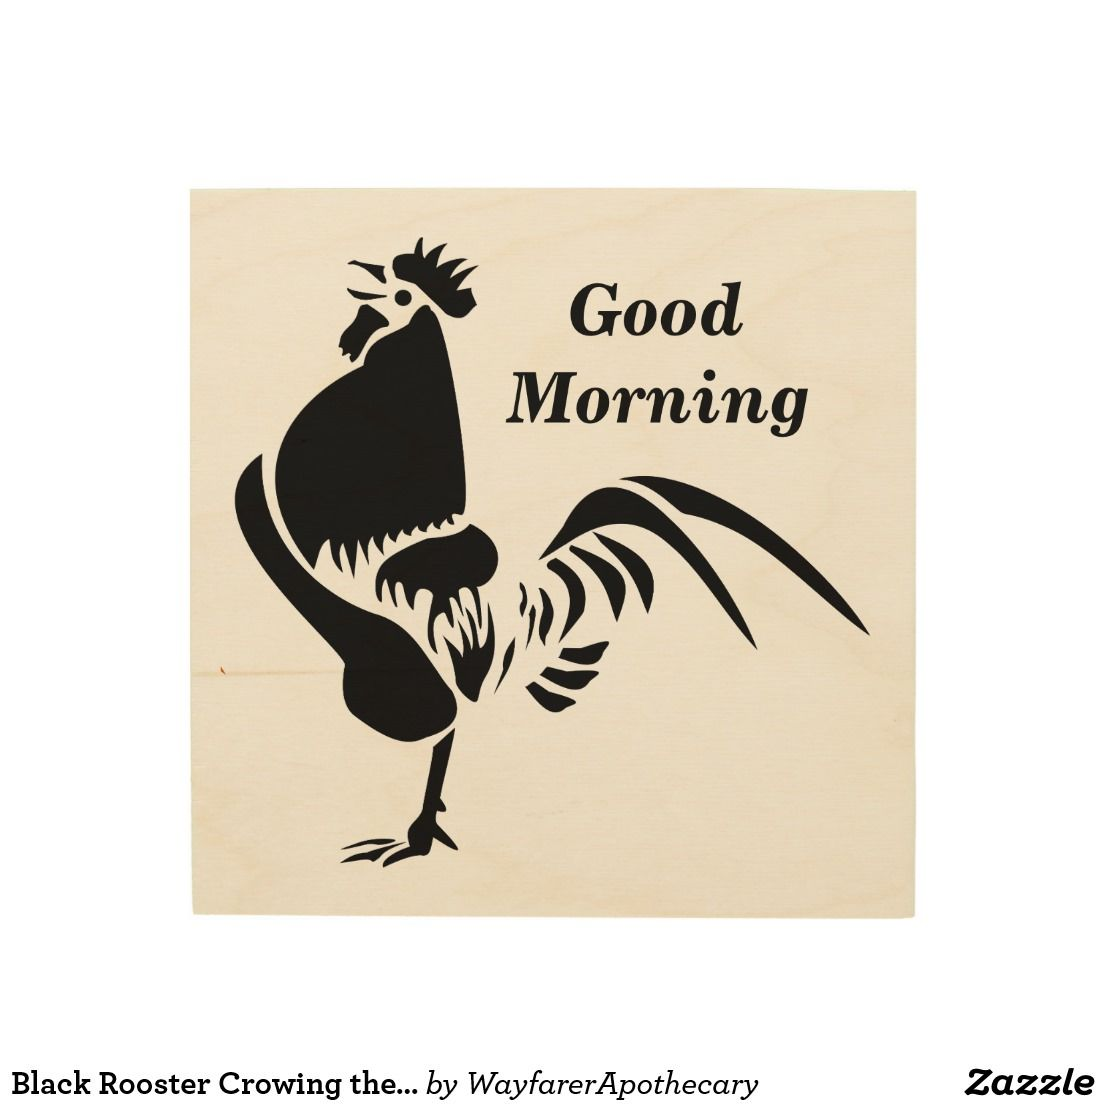 Black Rooster Crowing the Good Morning Alarm Wood Wall Decor